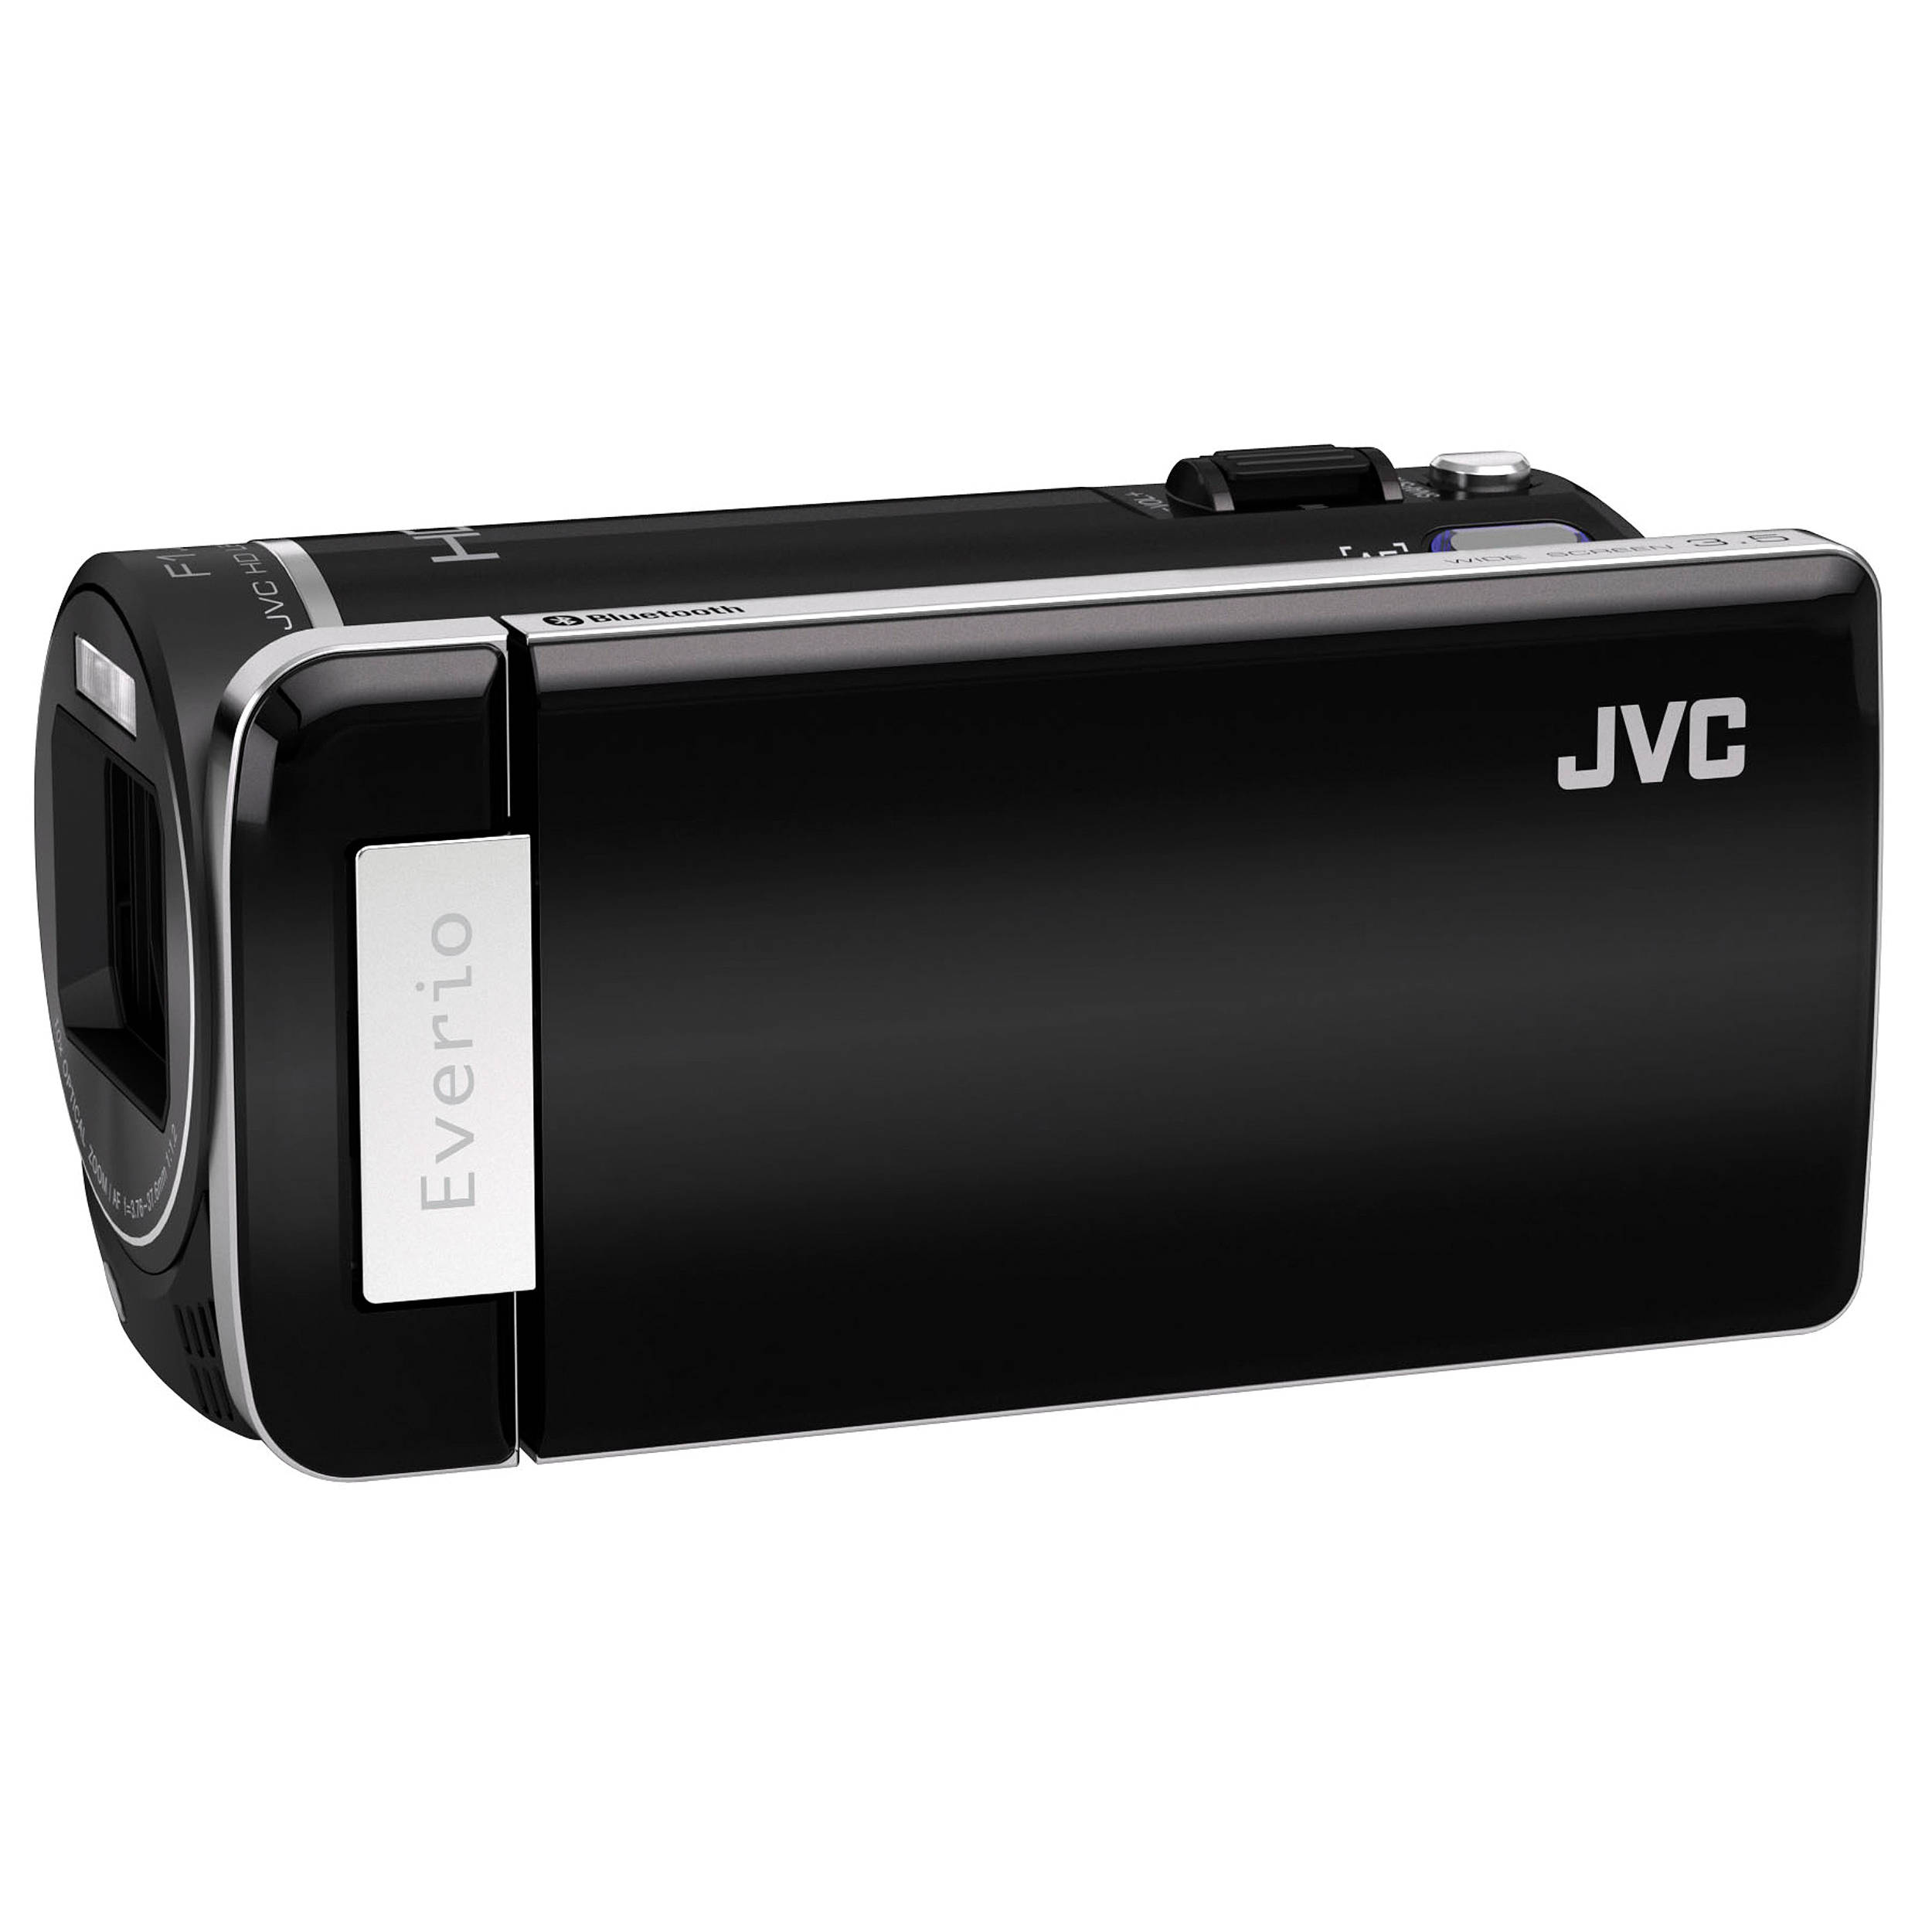 JVC GZ-HM855 HD Everio PAL Camcorder